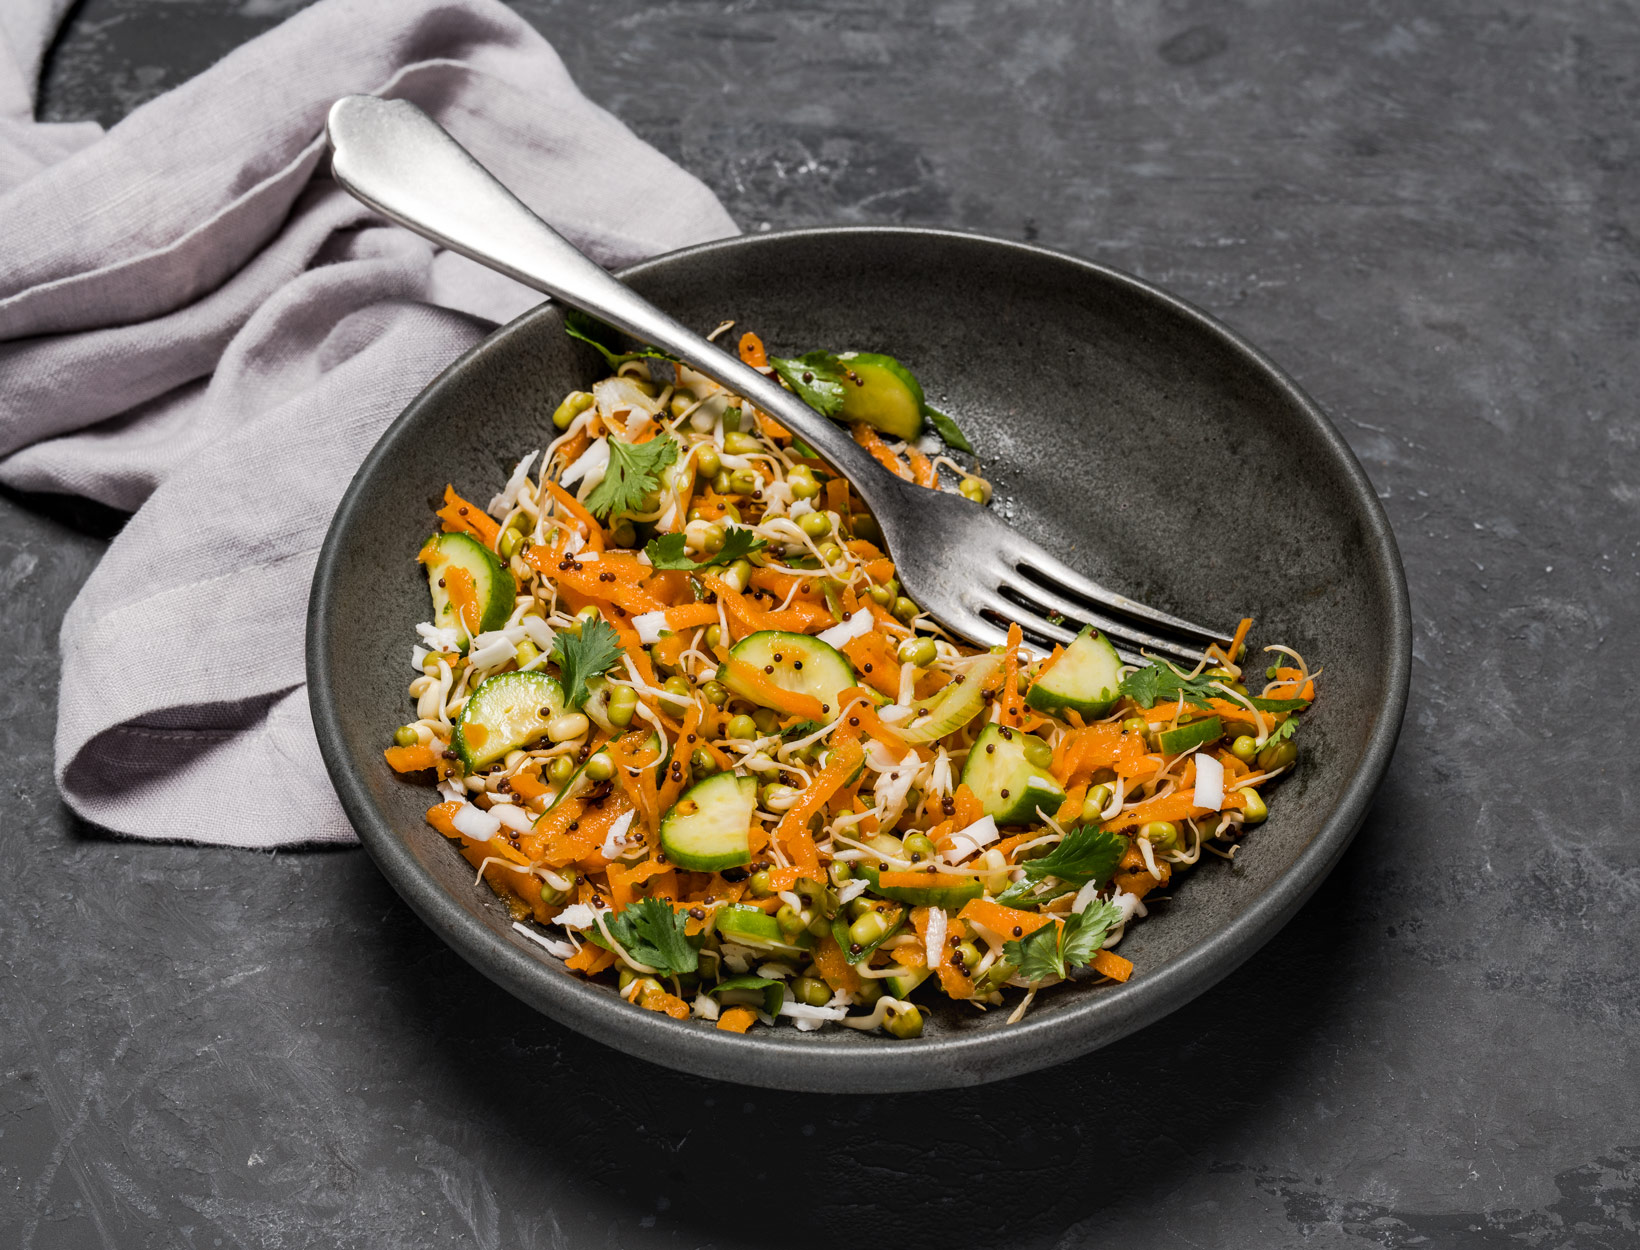 Carrot Salad with Sprouted Mung Beans